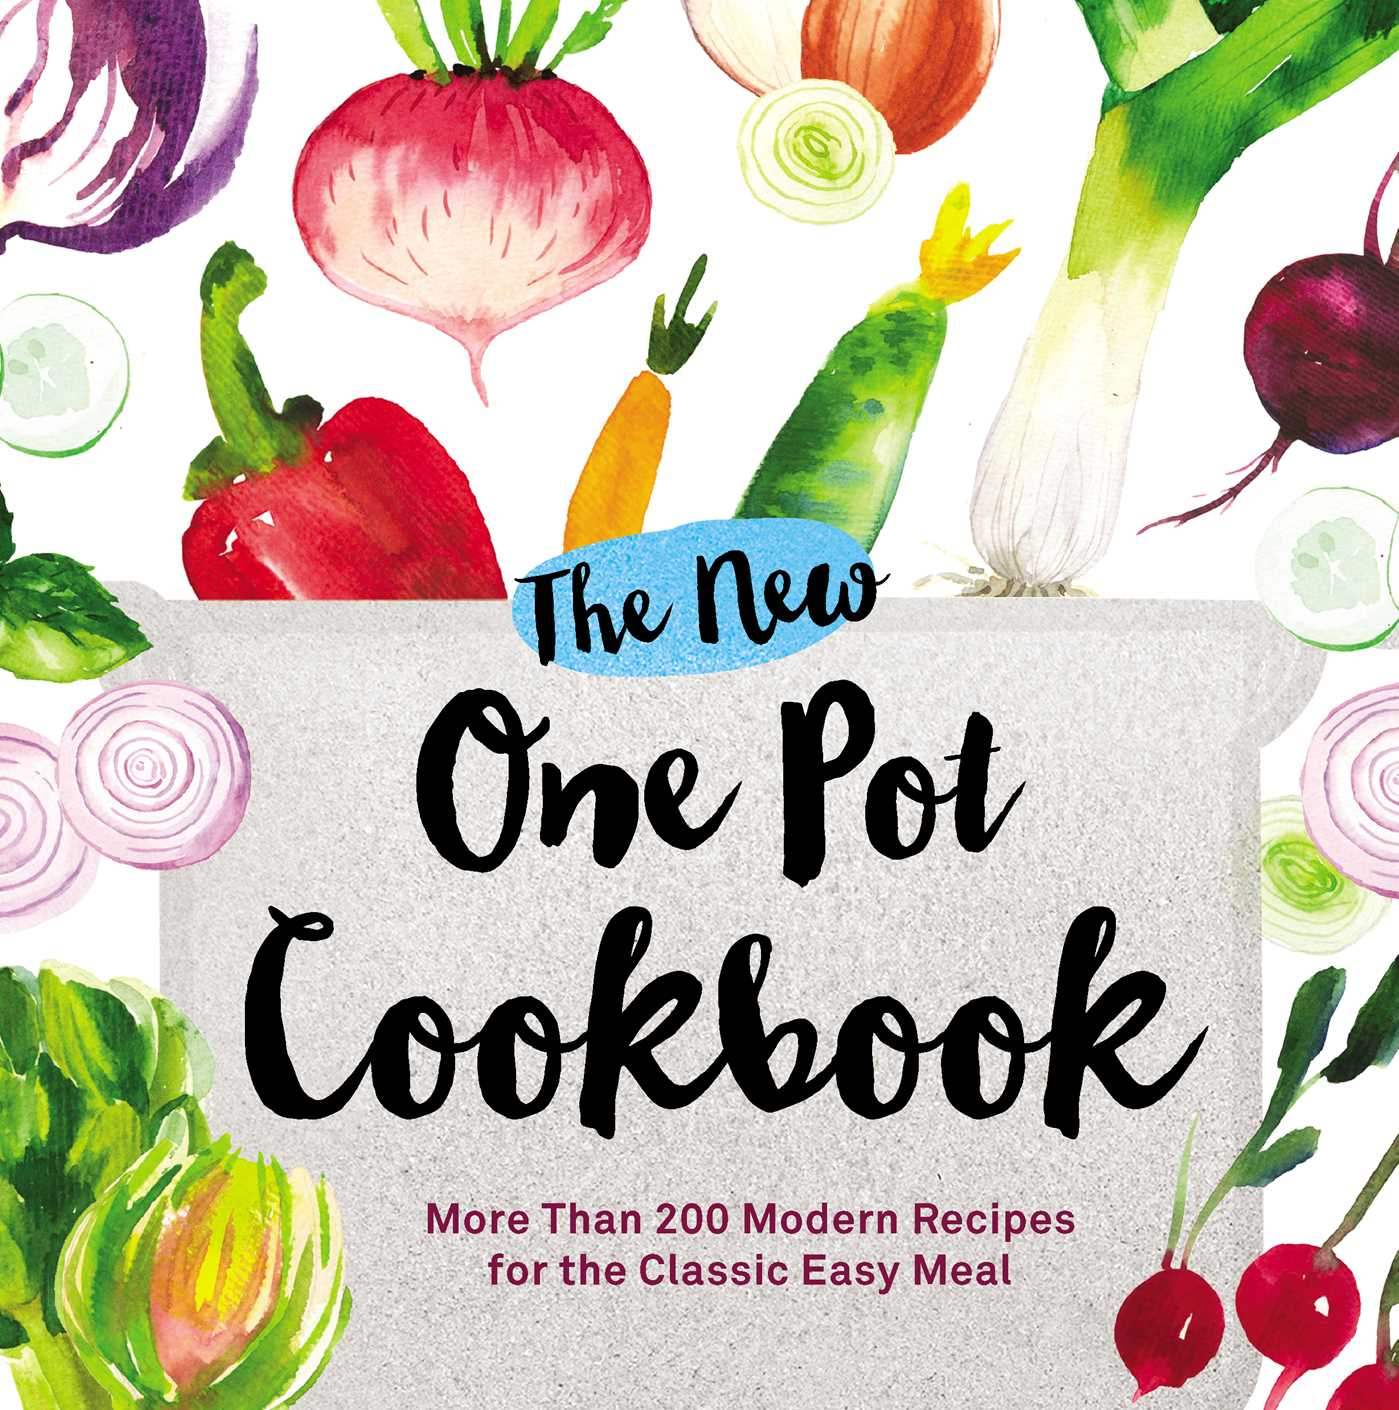 The new one pot cookbook 9781507200254 hr